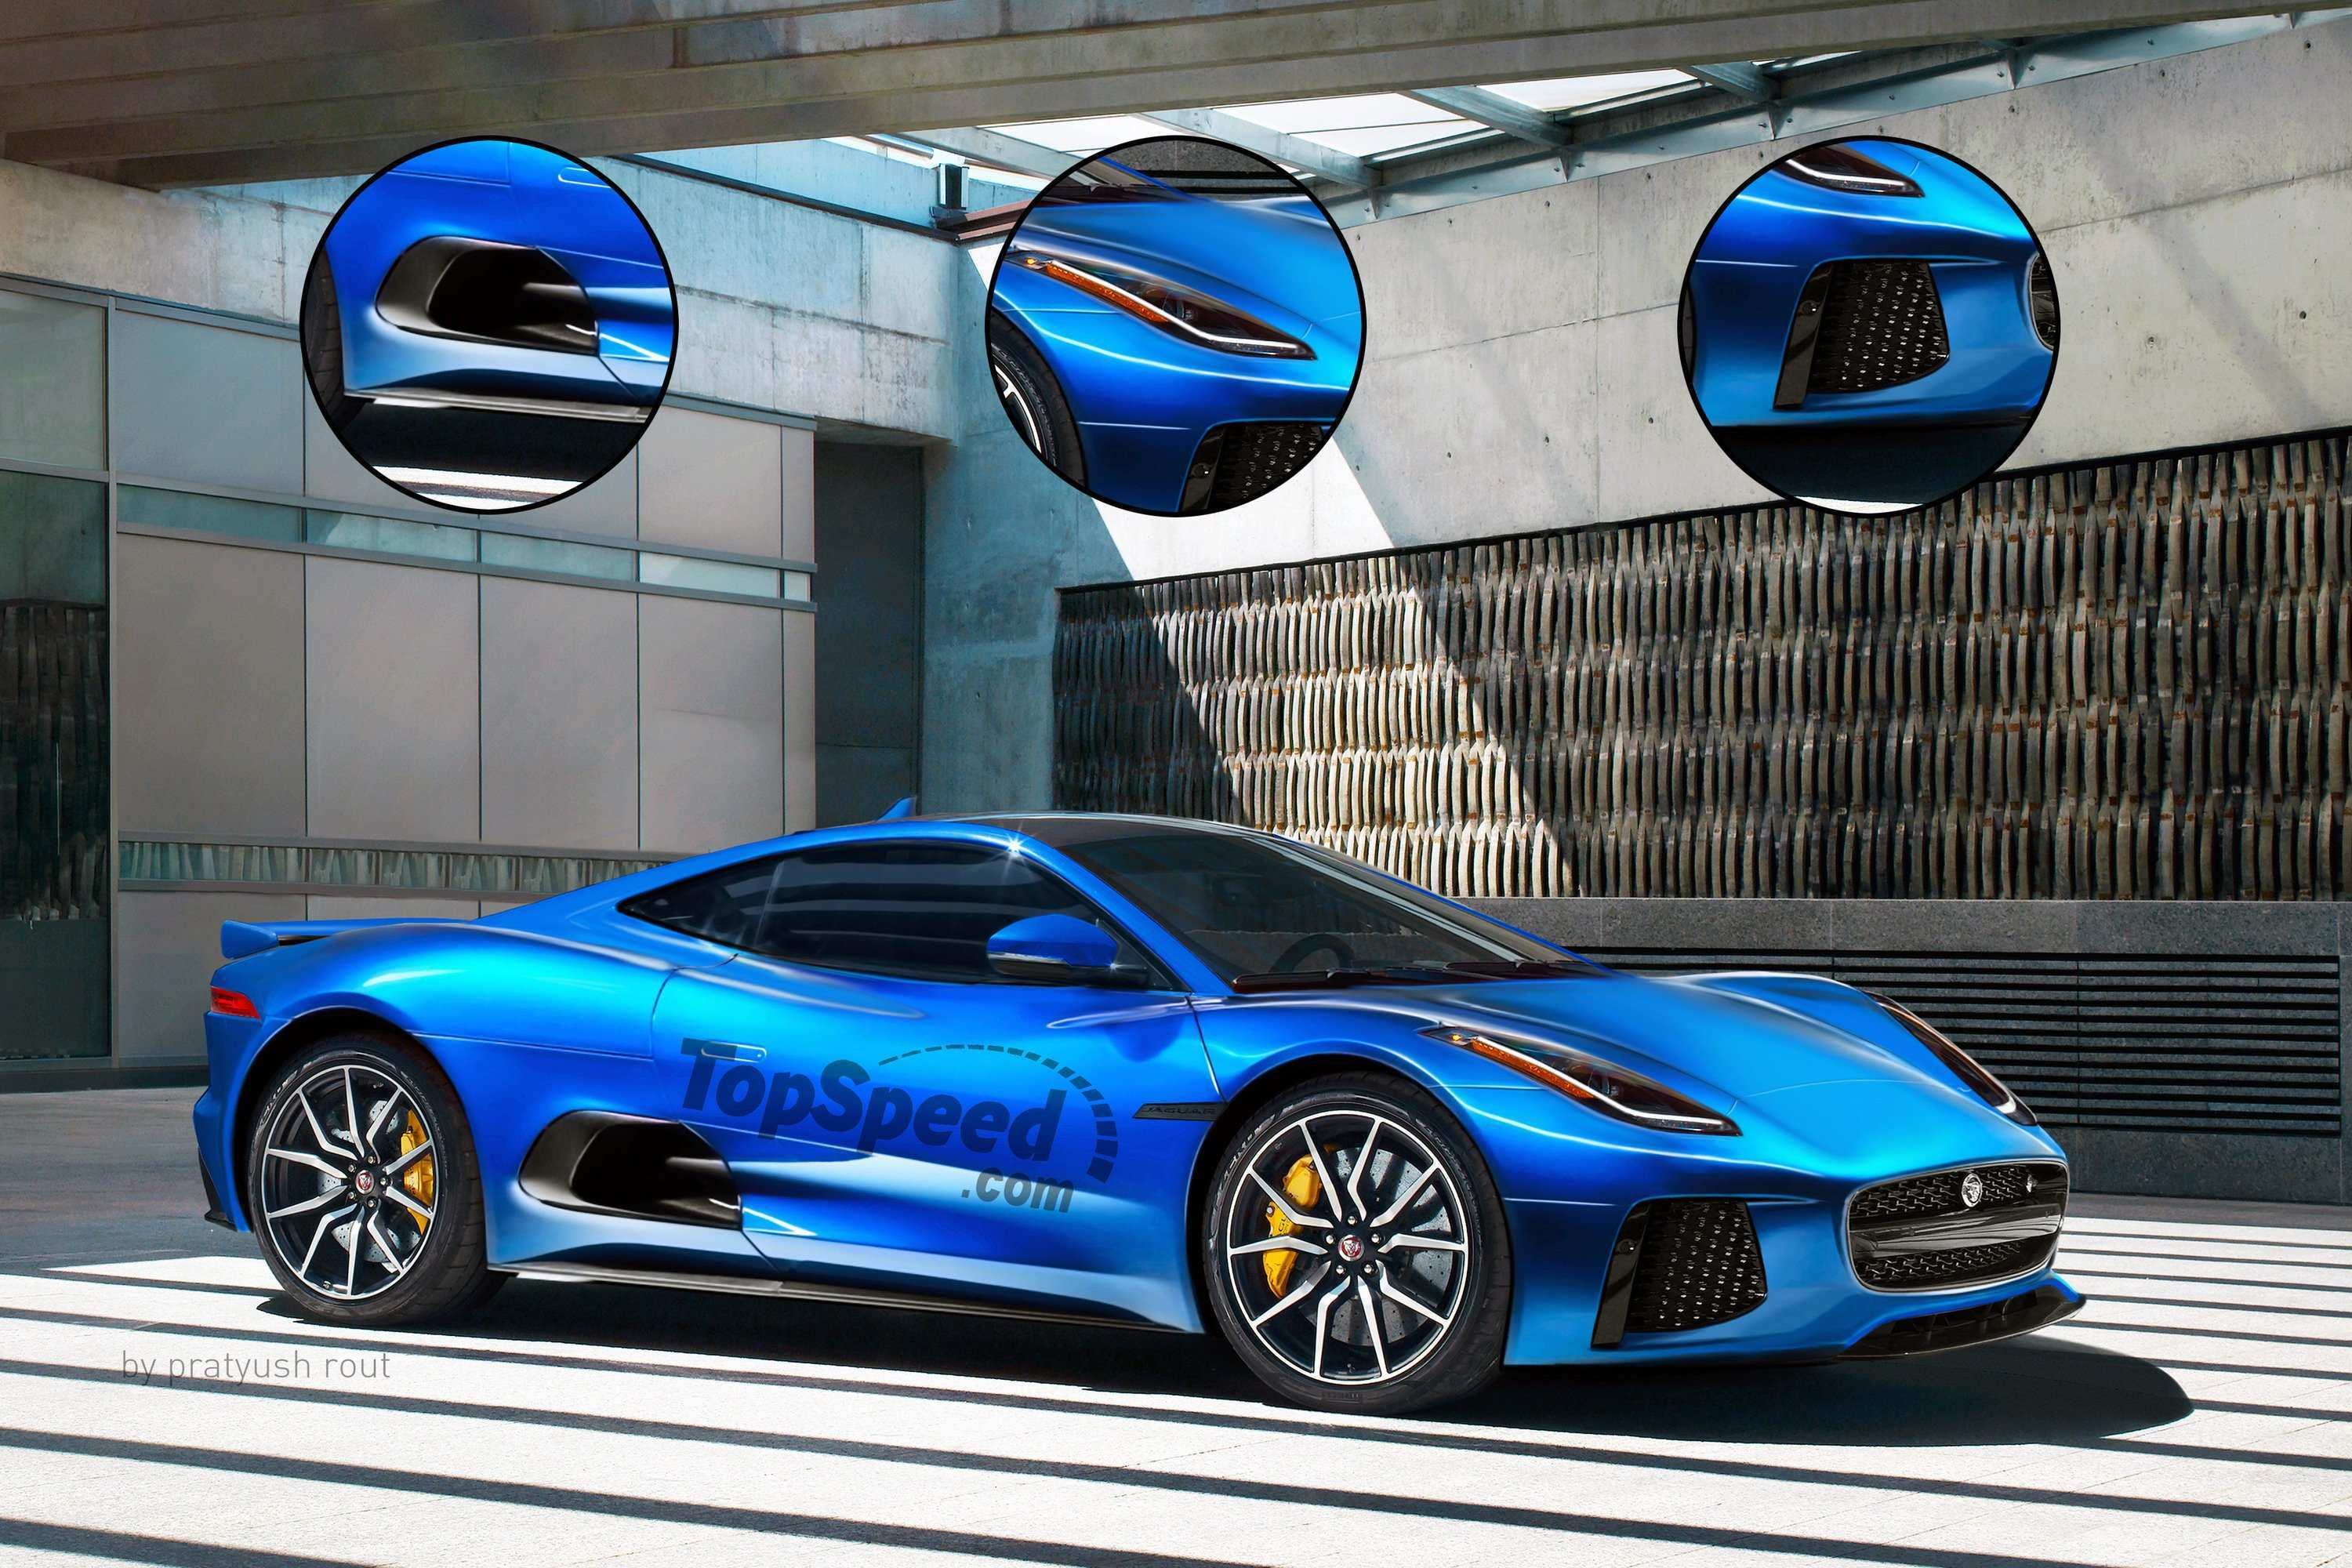 69 Best Review 2020 Jaguar F Type Svr Performance for 2020 Jaguar F Type Svr